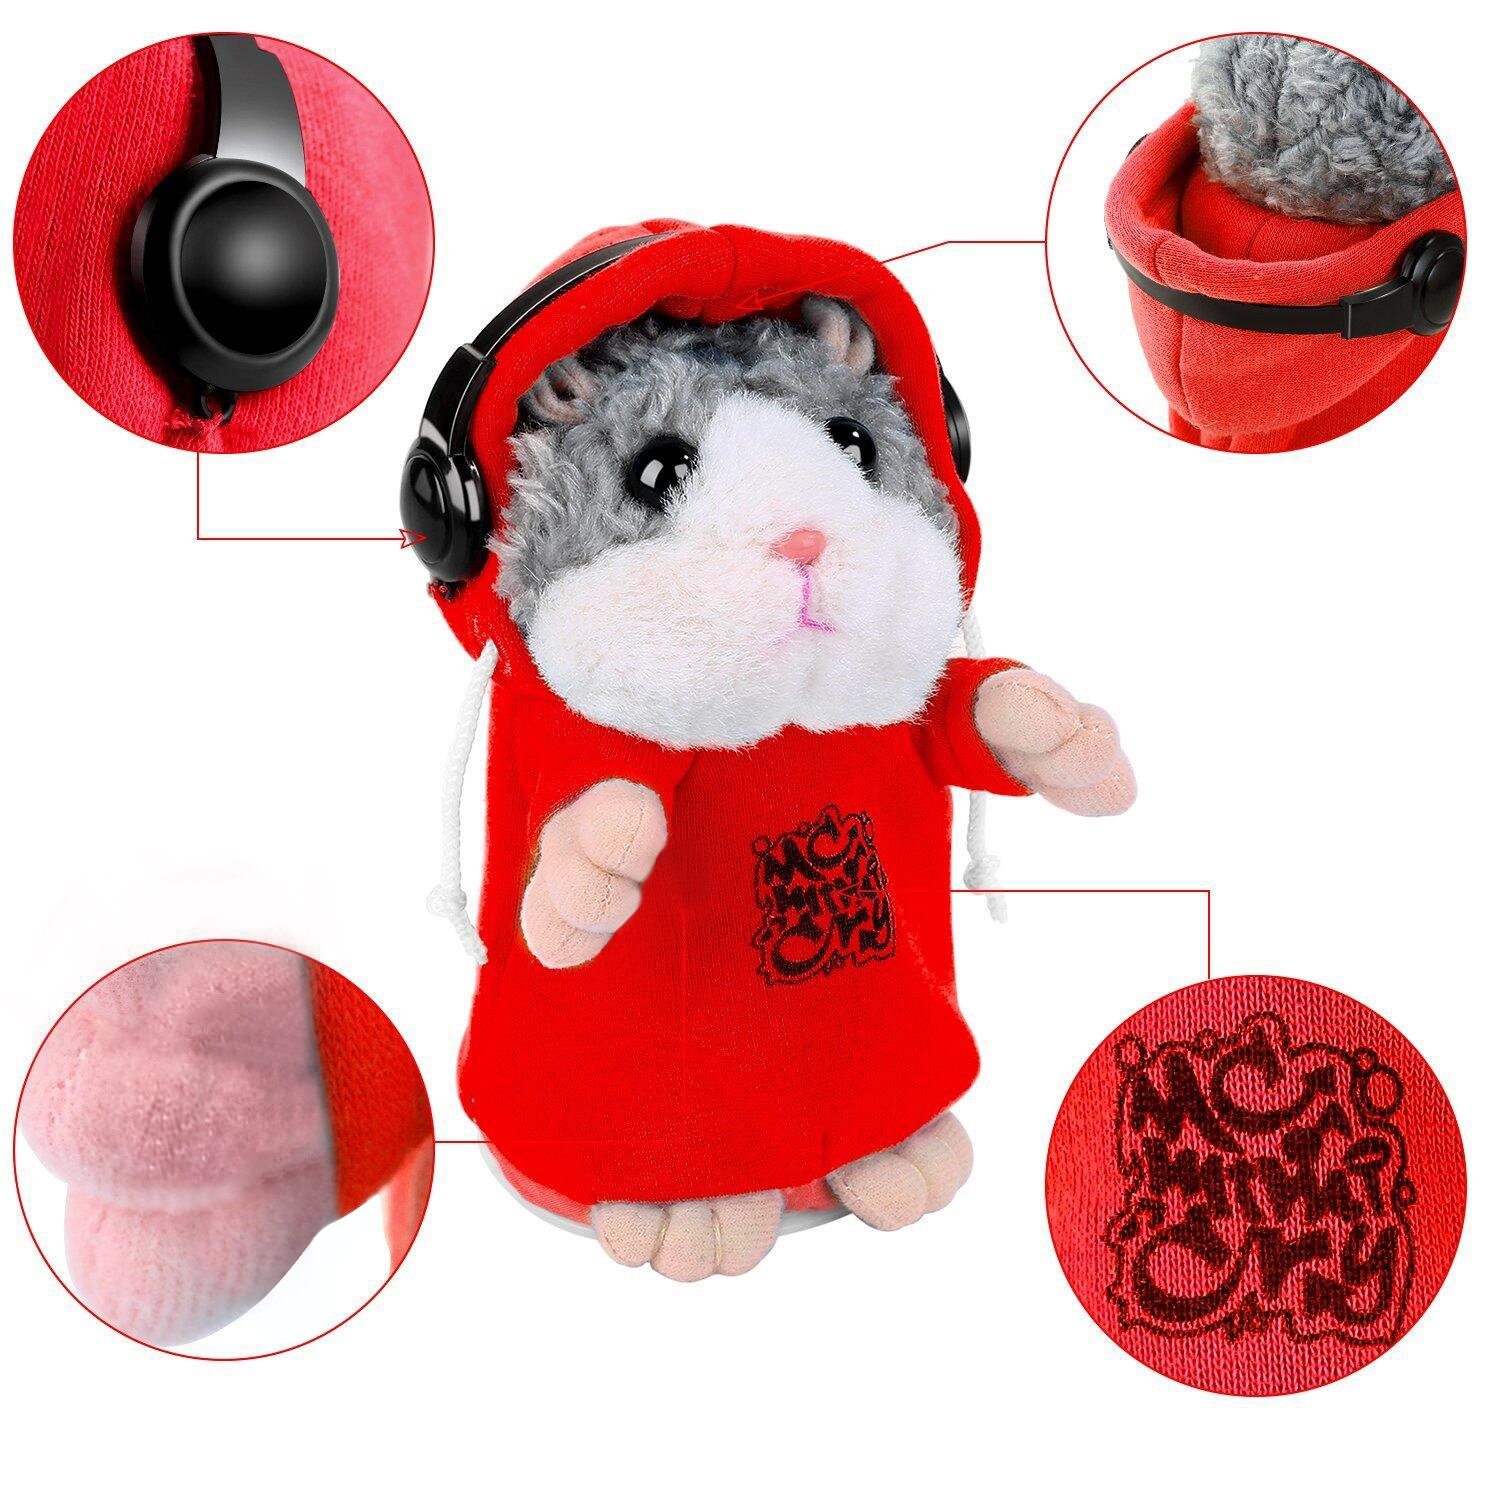 Talking Hamster Repeats What You Say, Cute Plush Electronic Mimicry Hamster Toy with Interactive Function, Gift for Kids Birthday and Parties (S2)